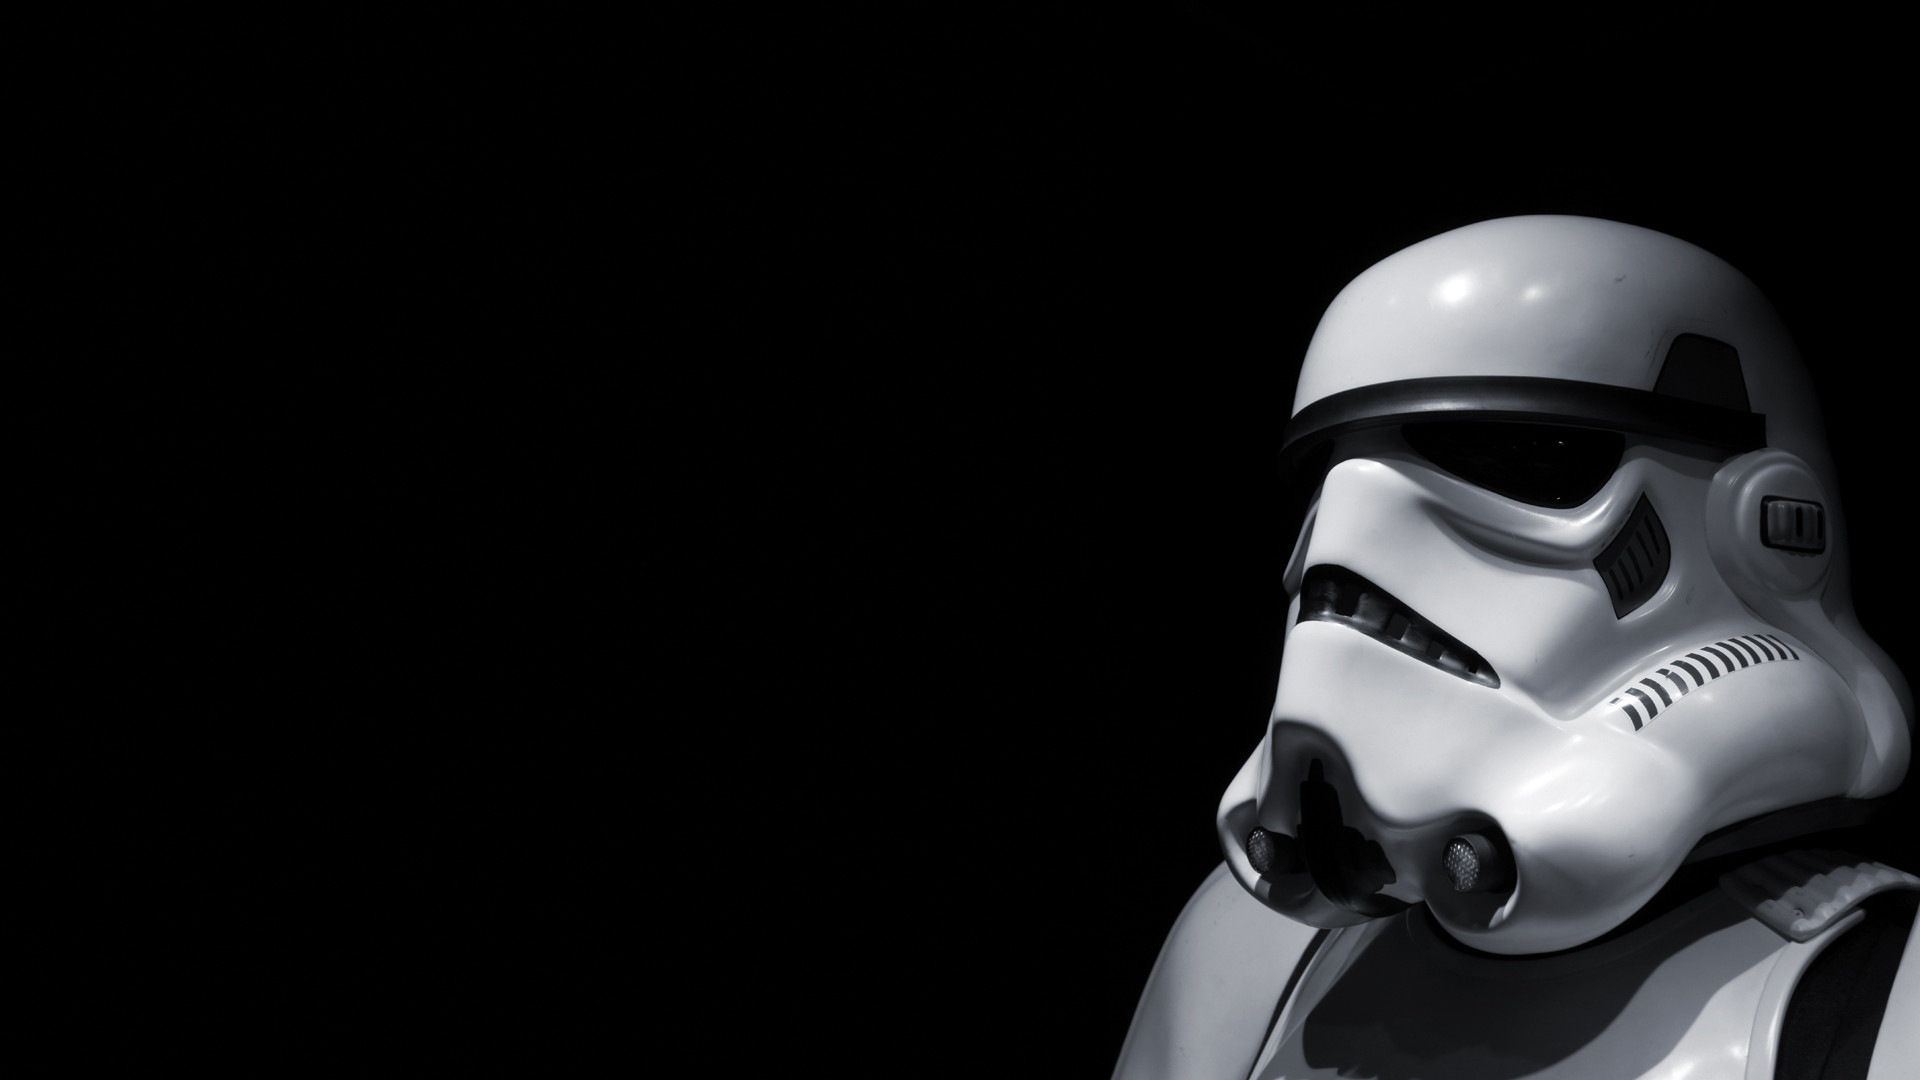 1920x1080 Stormtrooper [] I shot this photo of the stormtrooper costume .